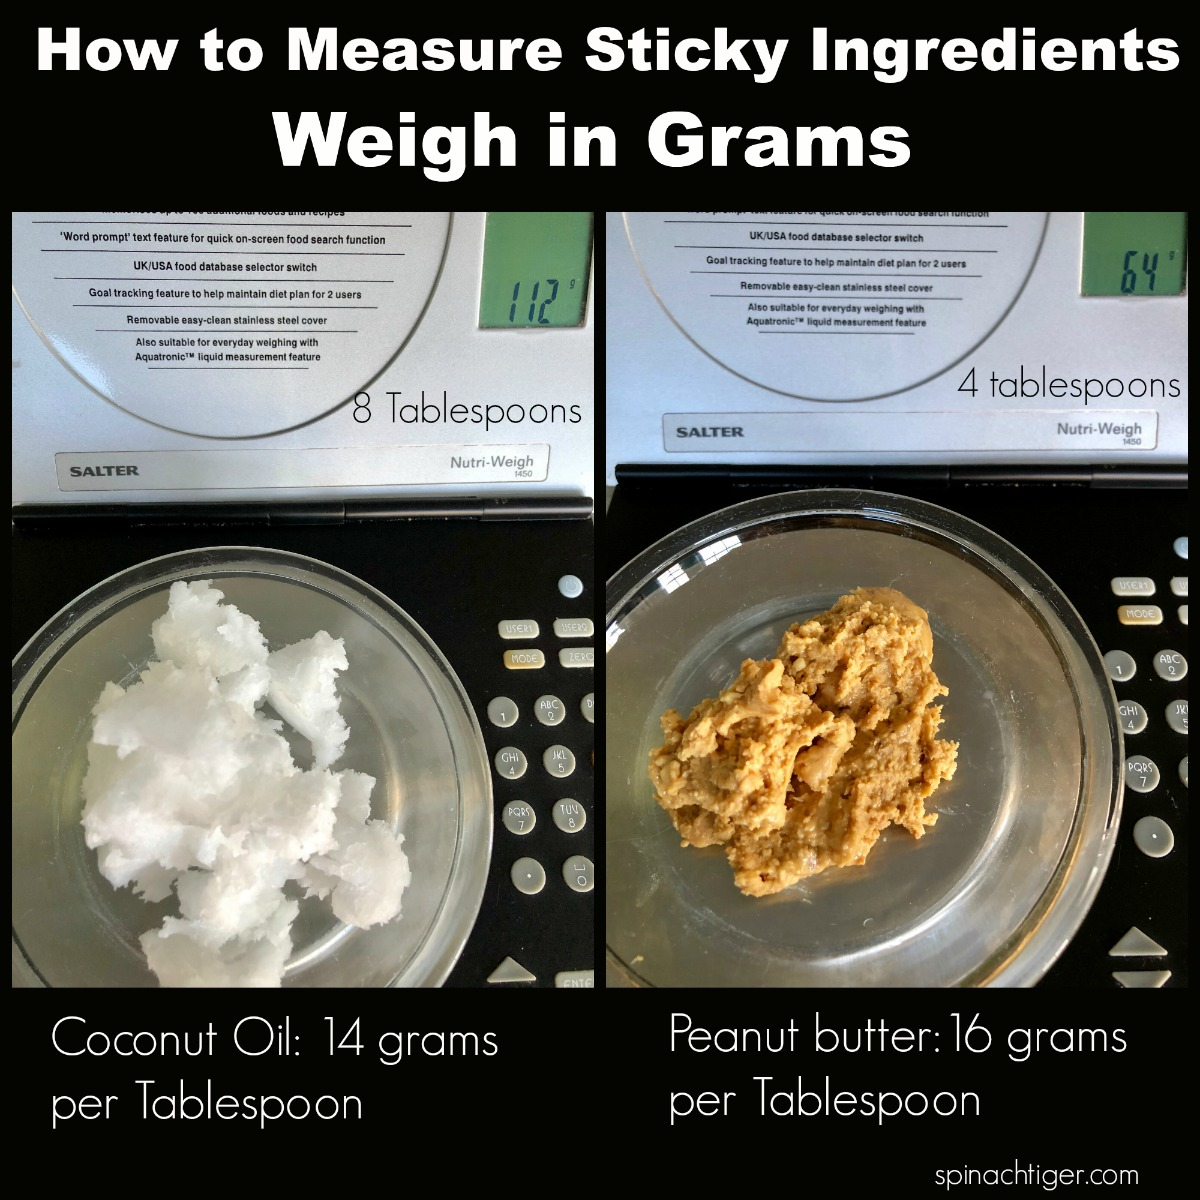 How to Measure Peanut Butter for Easy Fat Bombs from Spinach Tiger